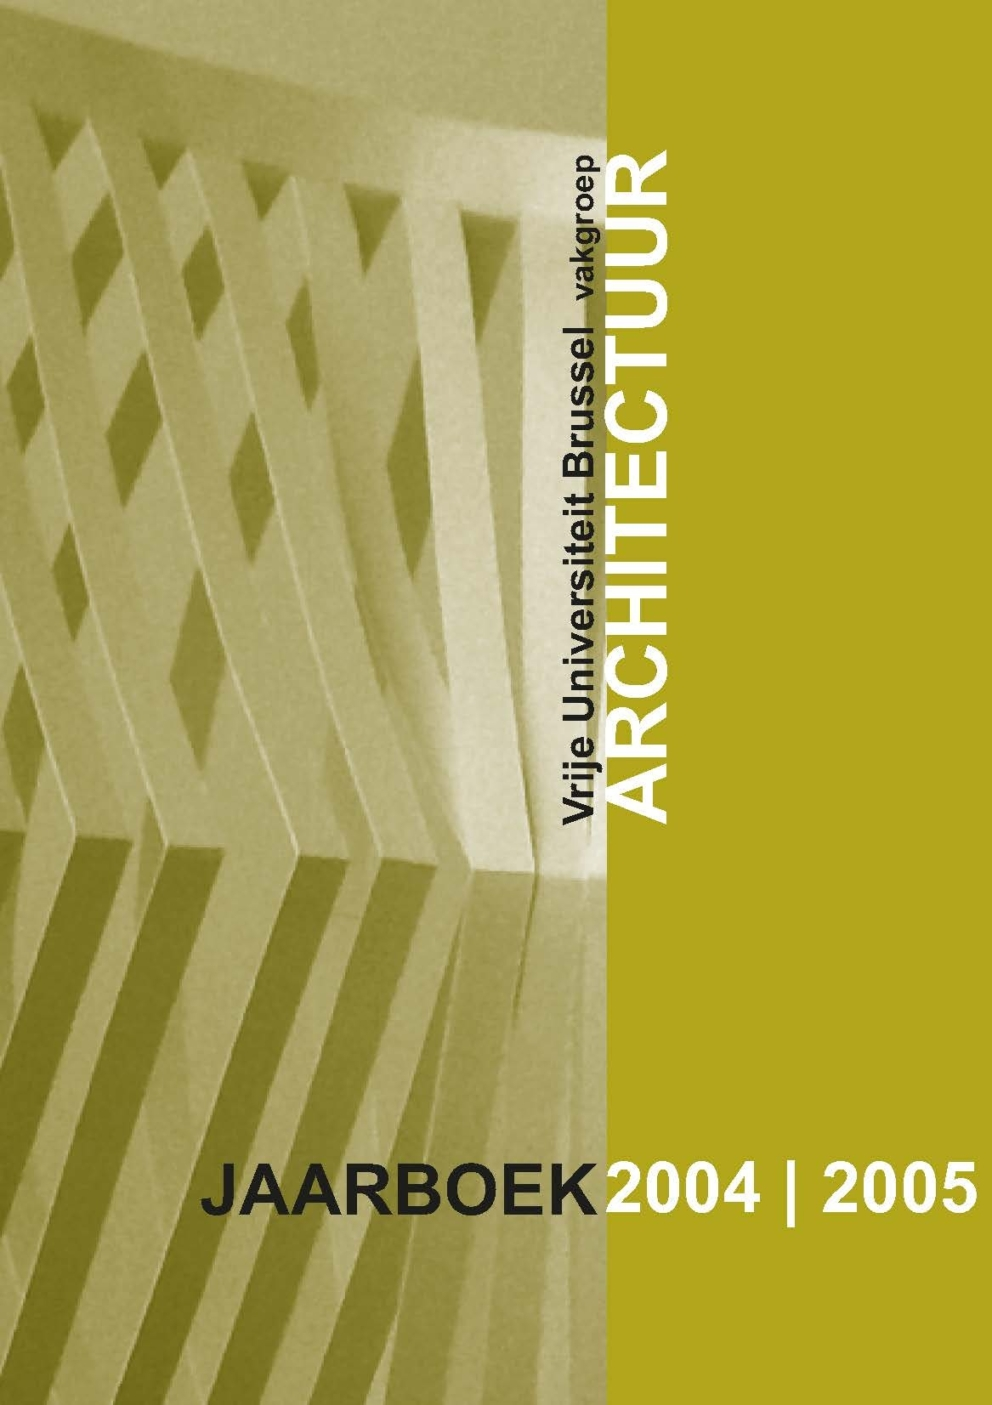 01 2098 VUB architect bblz Pagina 01